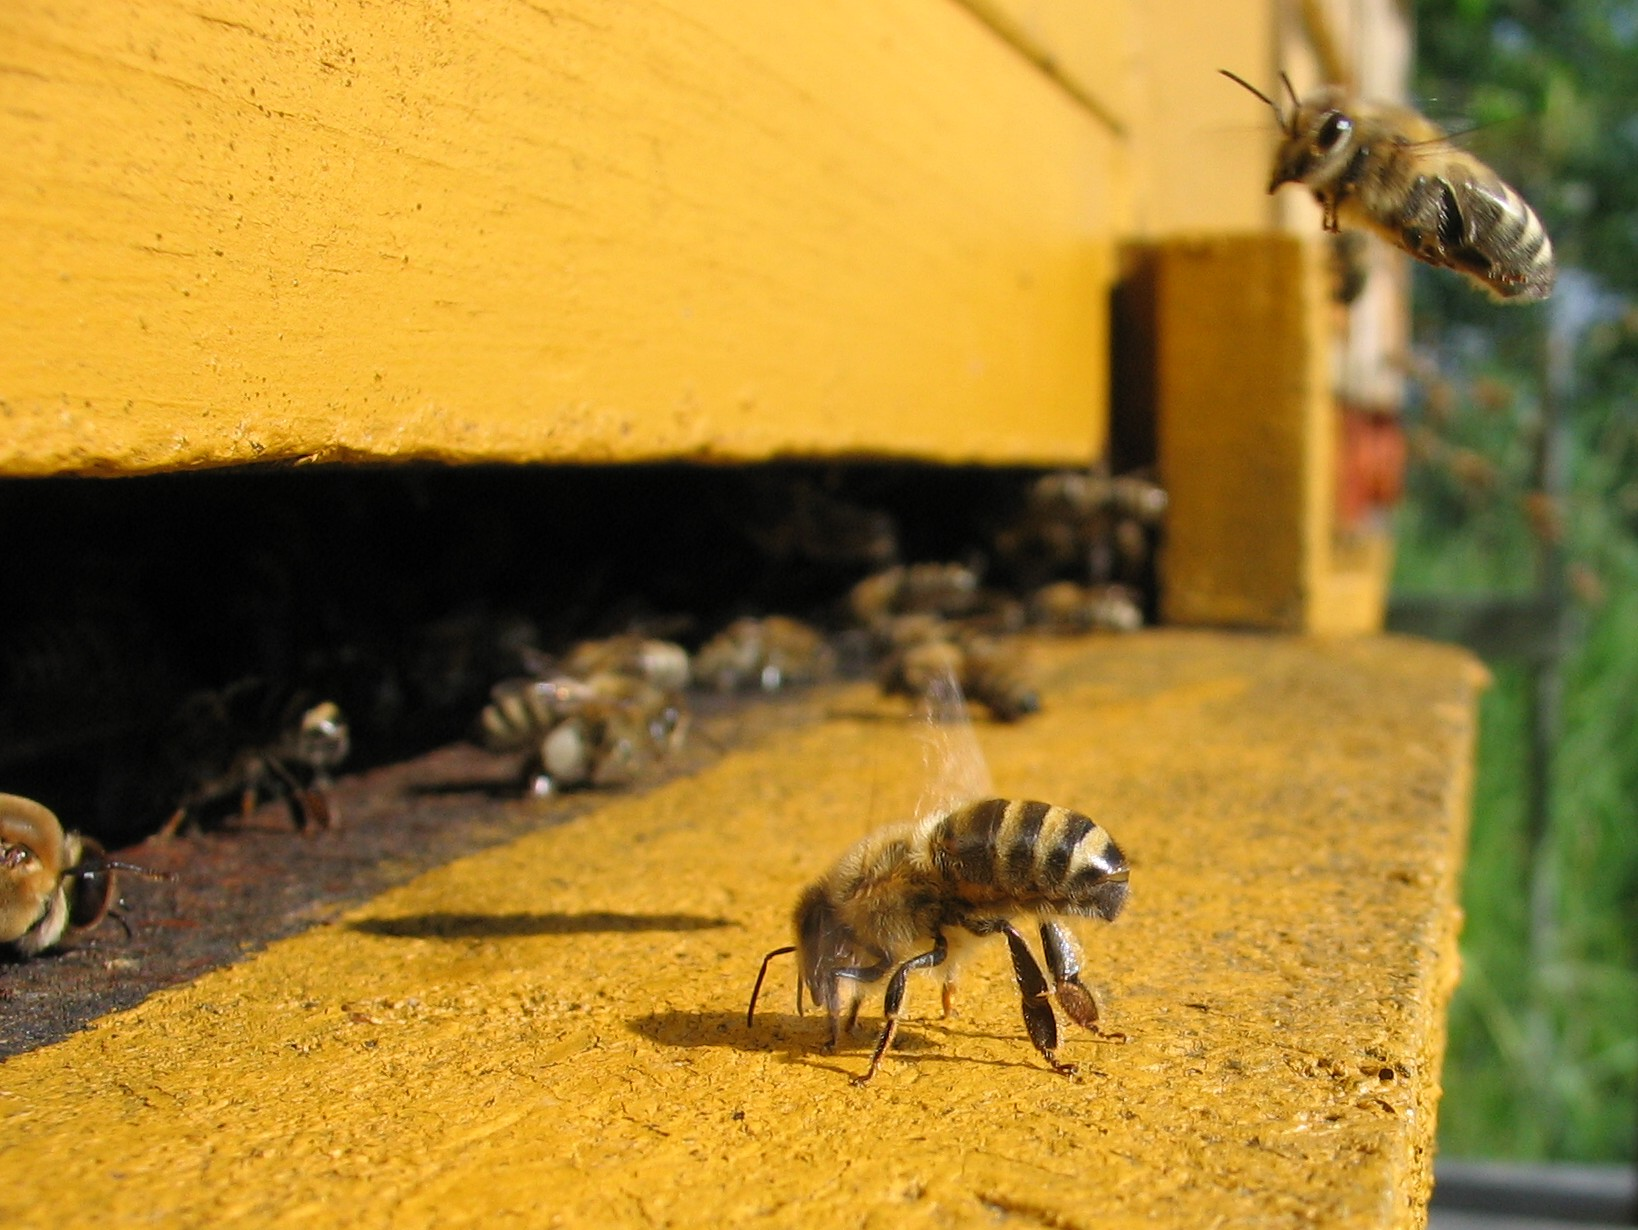 Decline in Honey Bee Population – A Cause for Concern